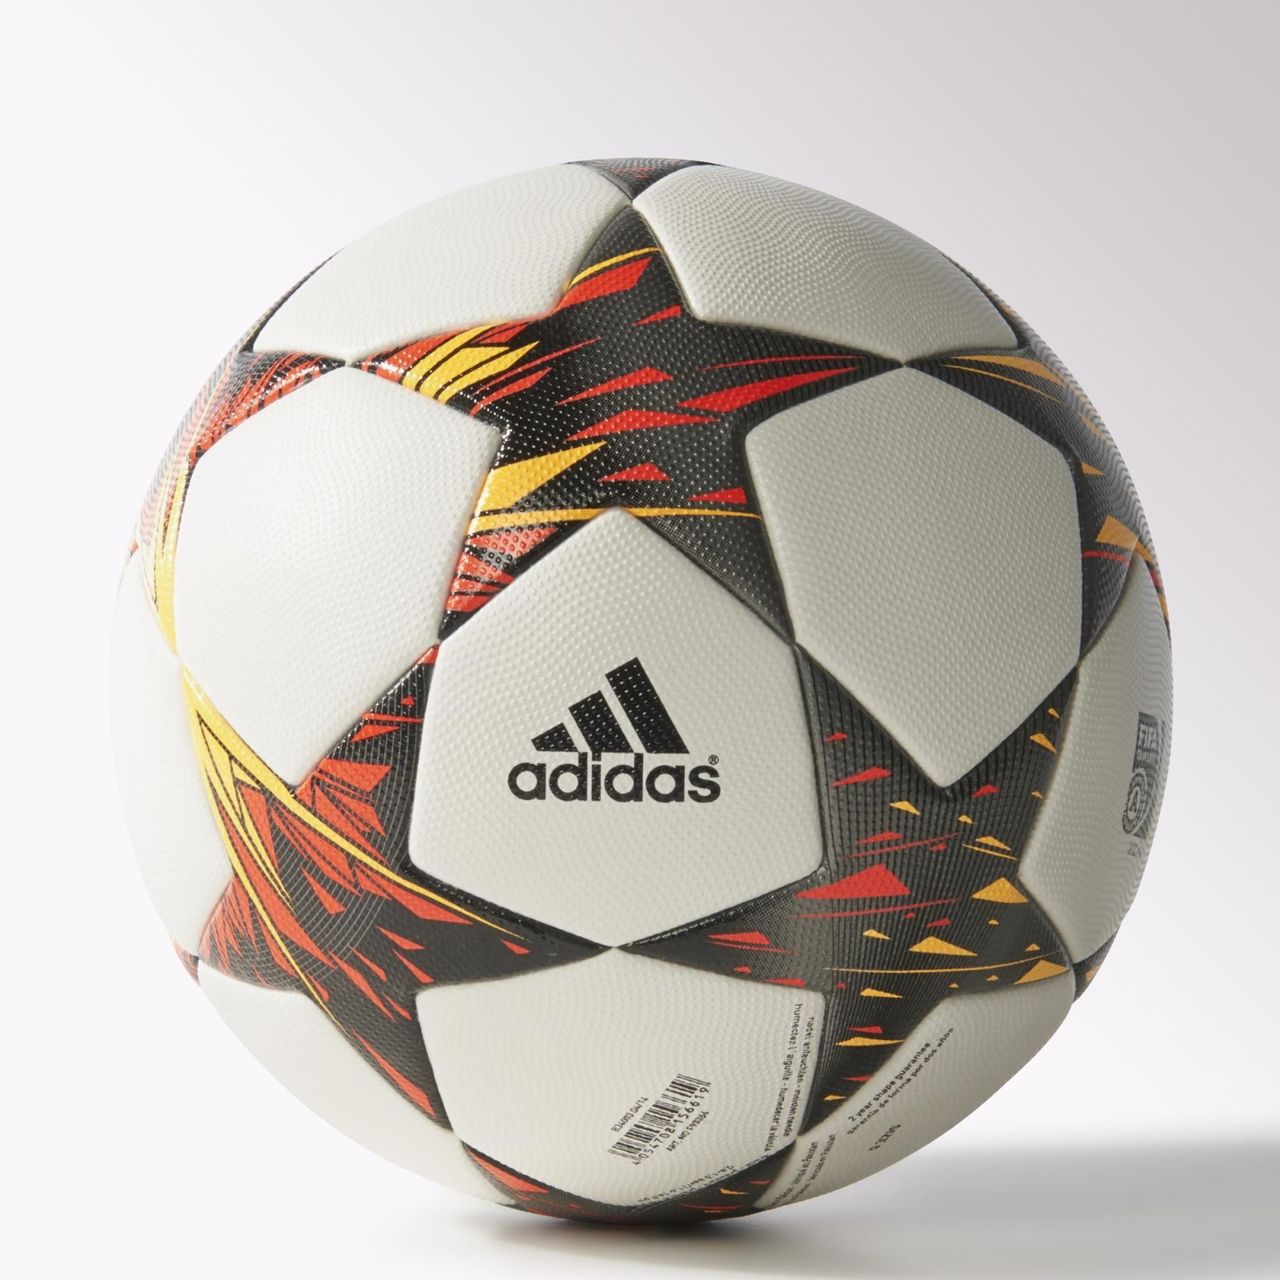 The Best Uefa Champions League Ball 2014